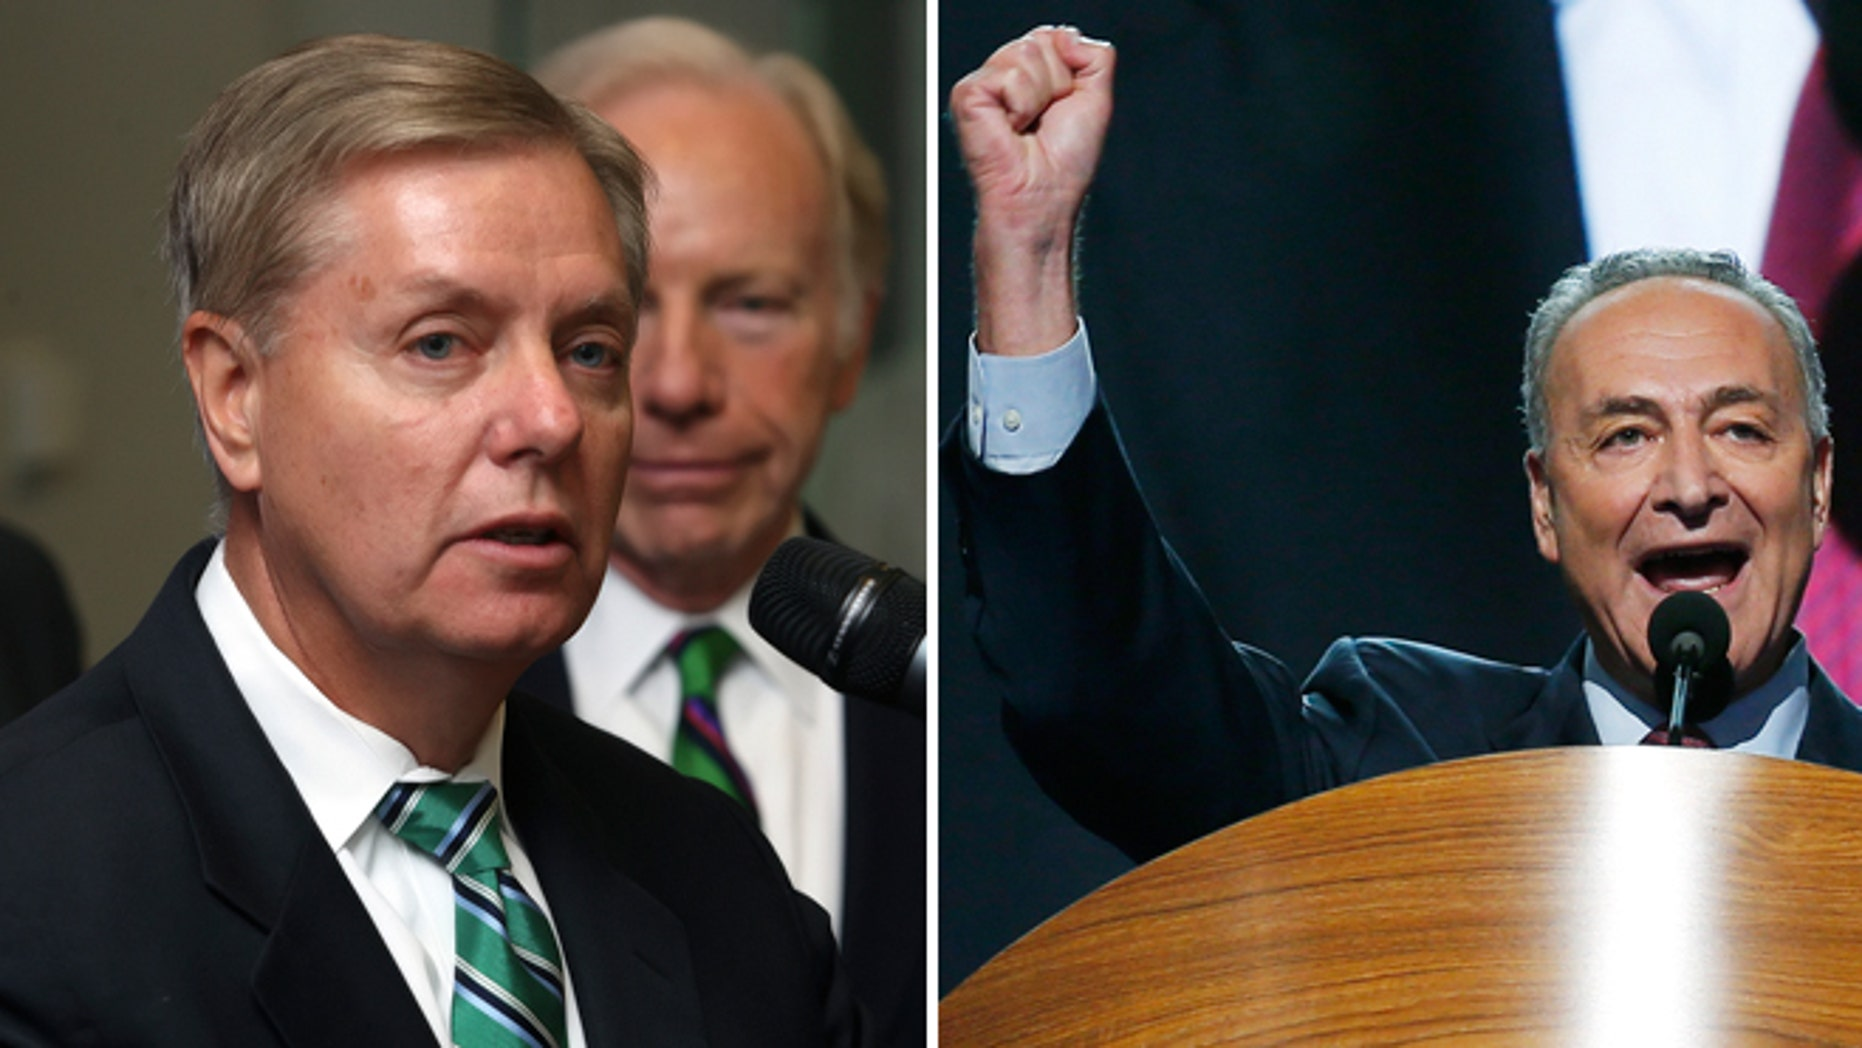 FILE: 2012: Sens. Lindsey Graham, R-S.C., and Chuck Schumer, D-N.Y., presented plans in comprehensive immigration reform days after the Nov. 6 election.